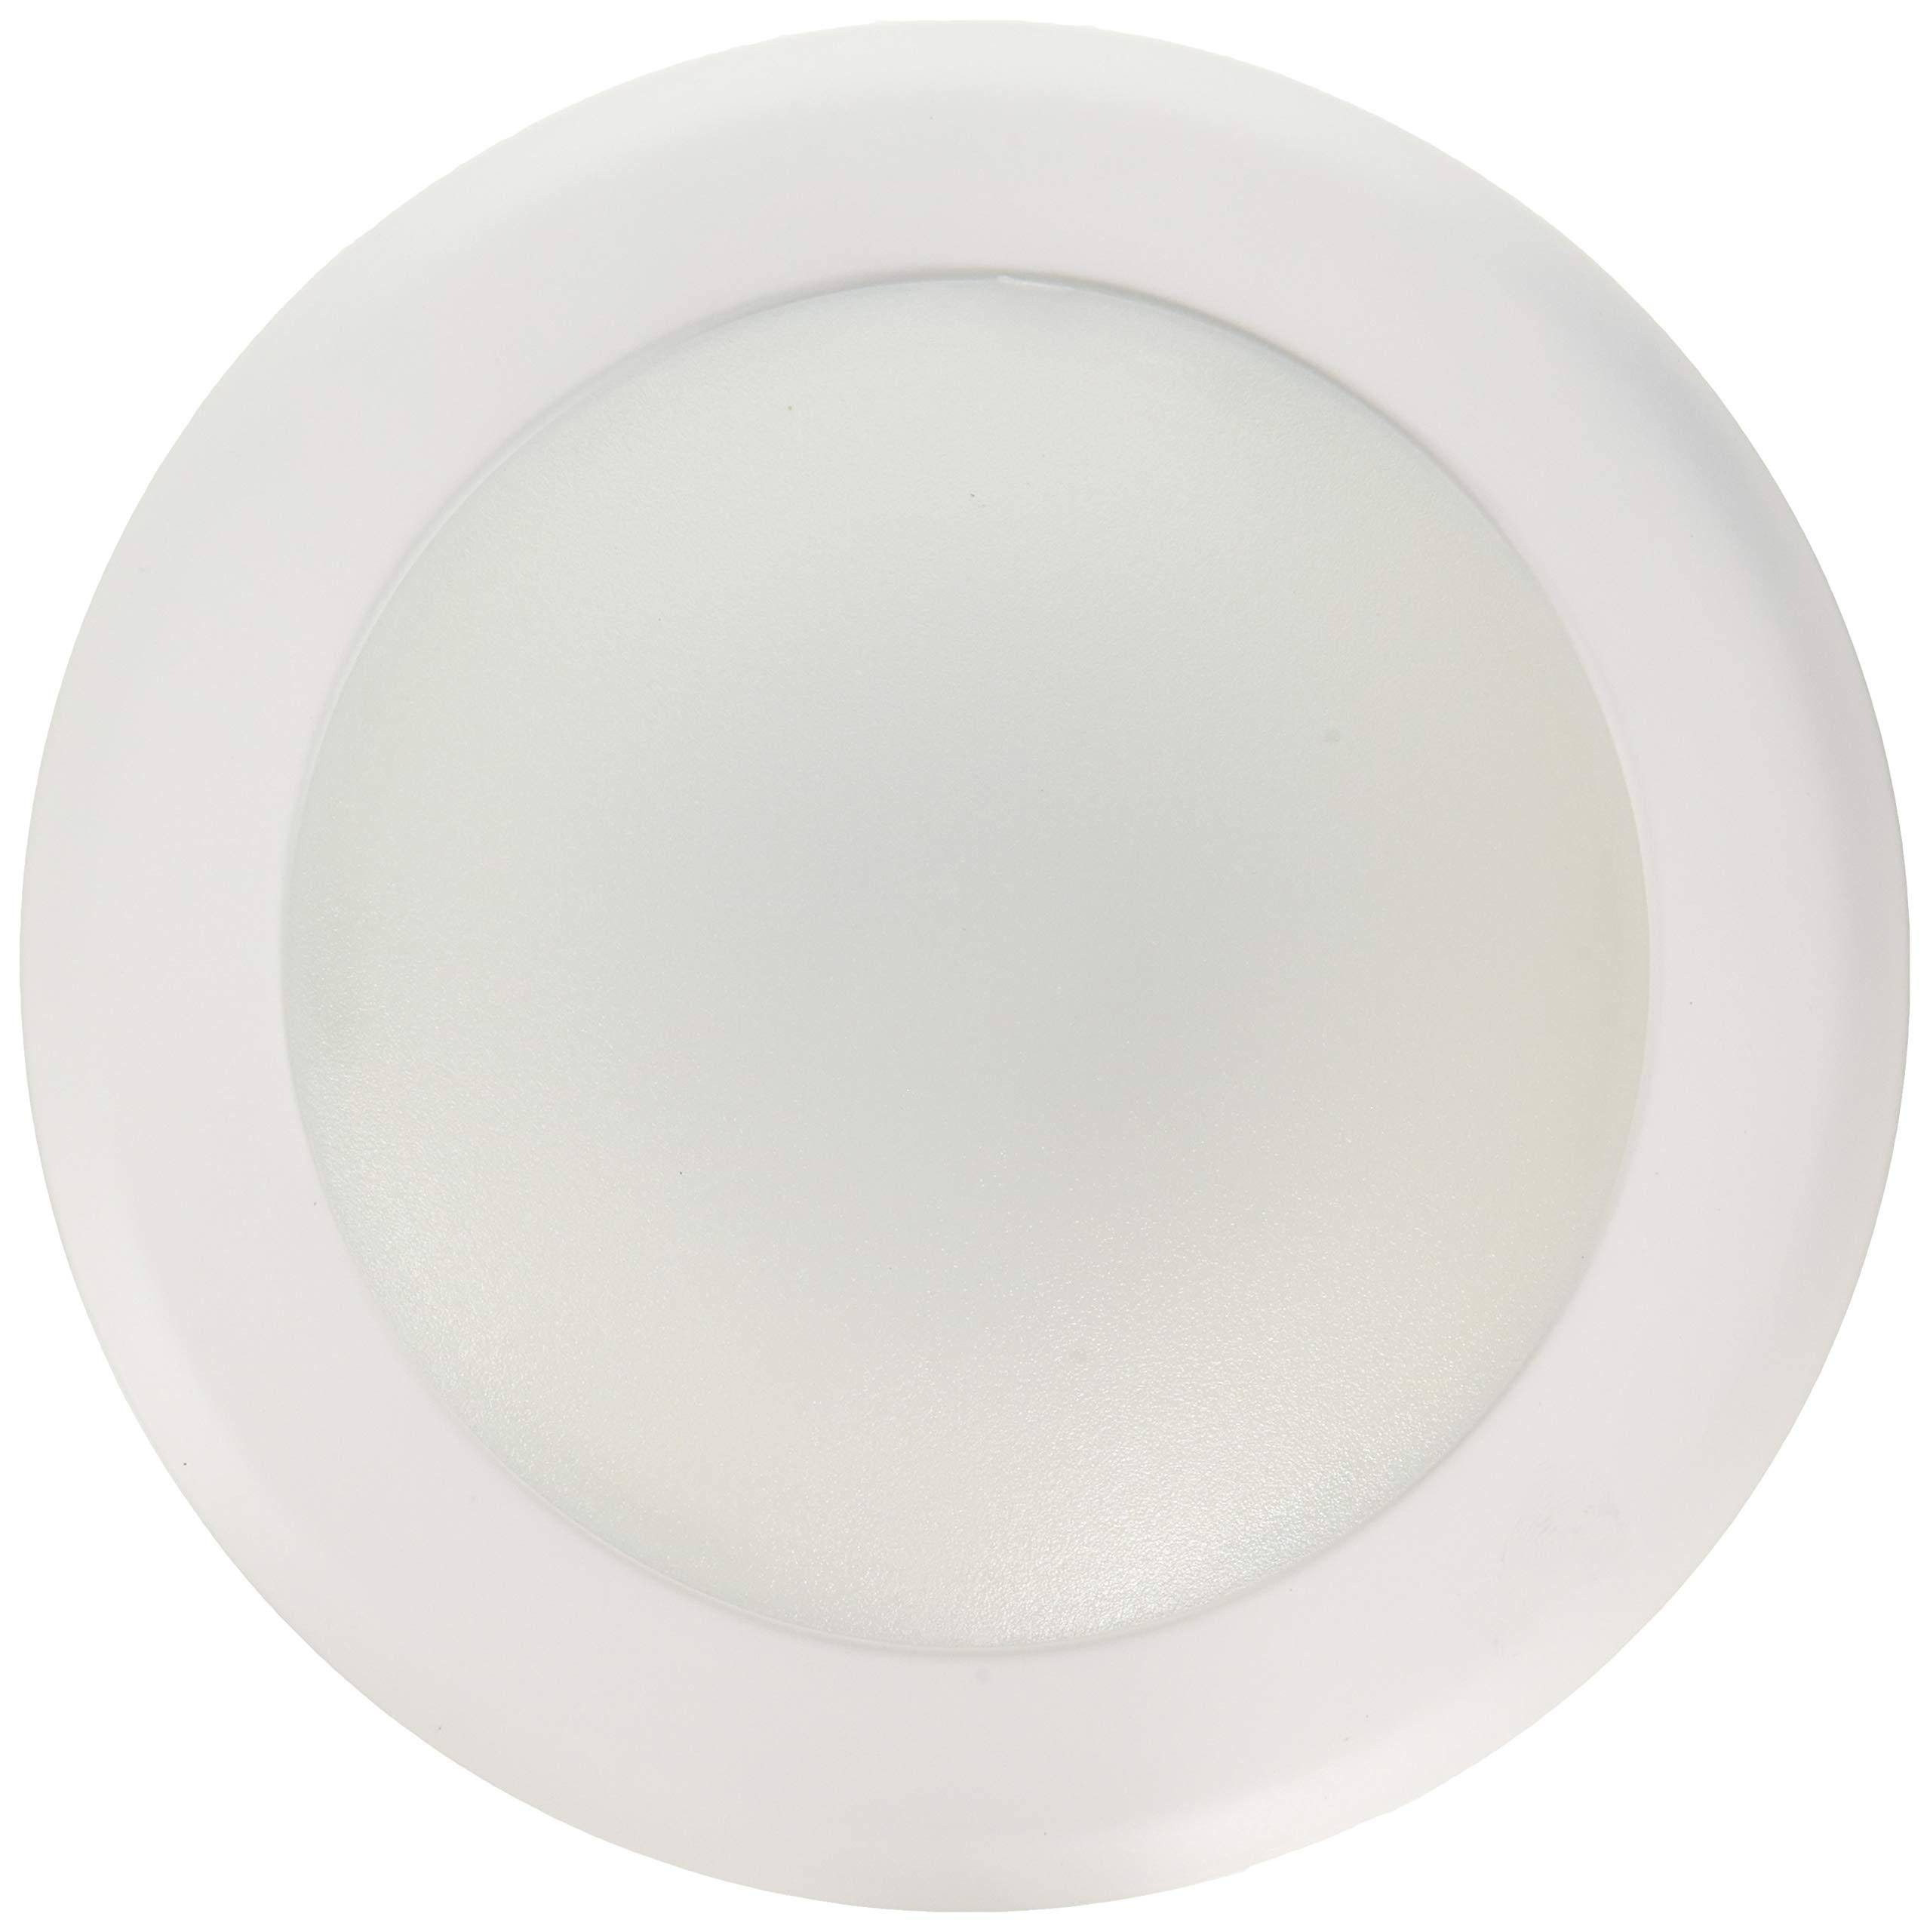 Nora Lighting, NLOPAC-R6509-30A-WH, OPAL LED White Surface Mount Ceiling Light, M77951